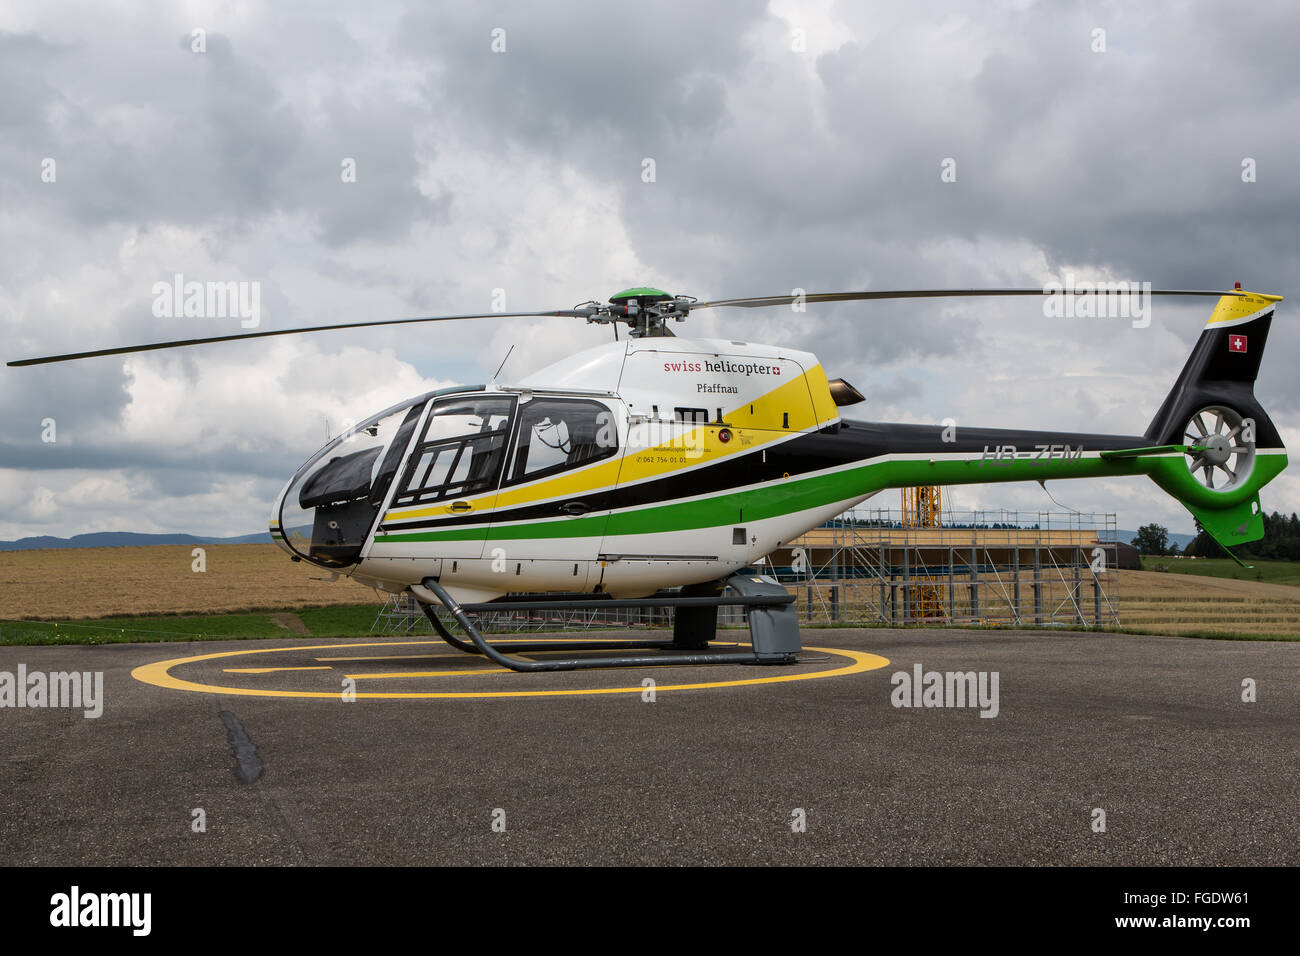 Swiss Helicopter Eurocopter EC 120B Colibri - Stock Image